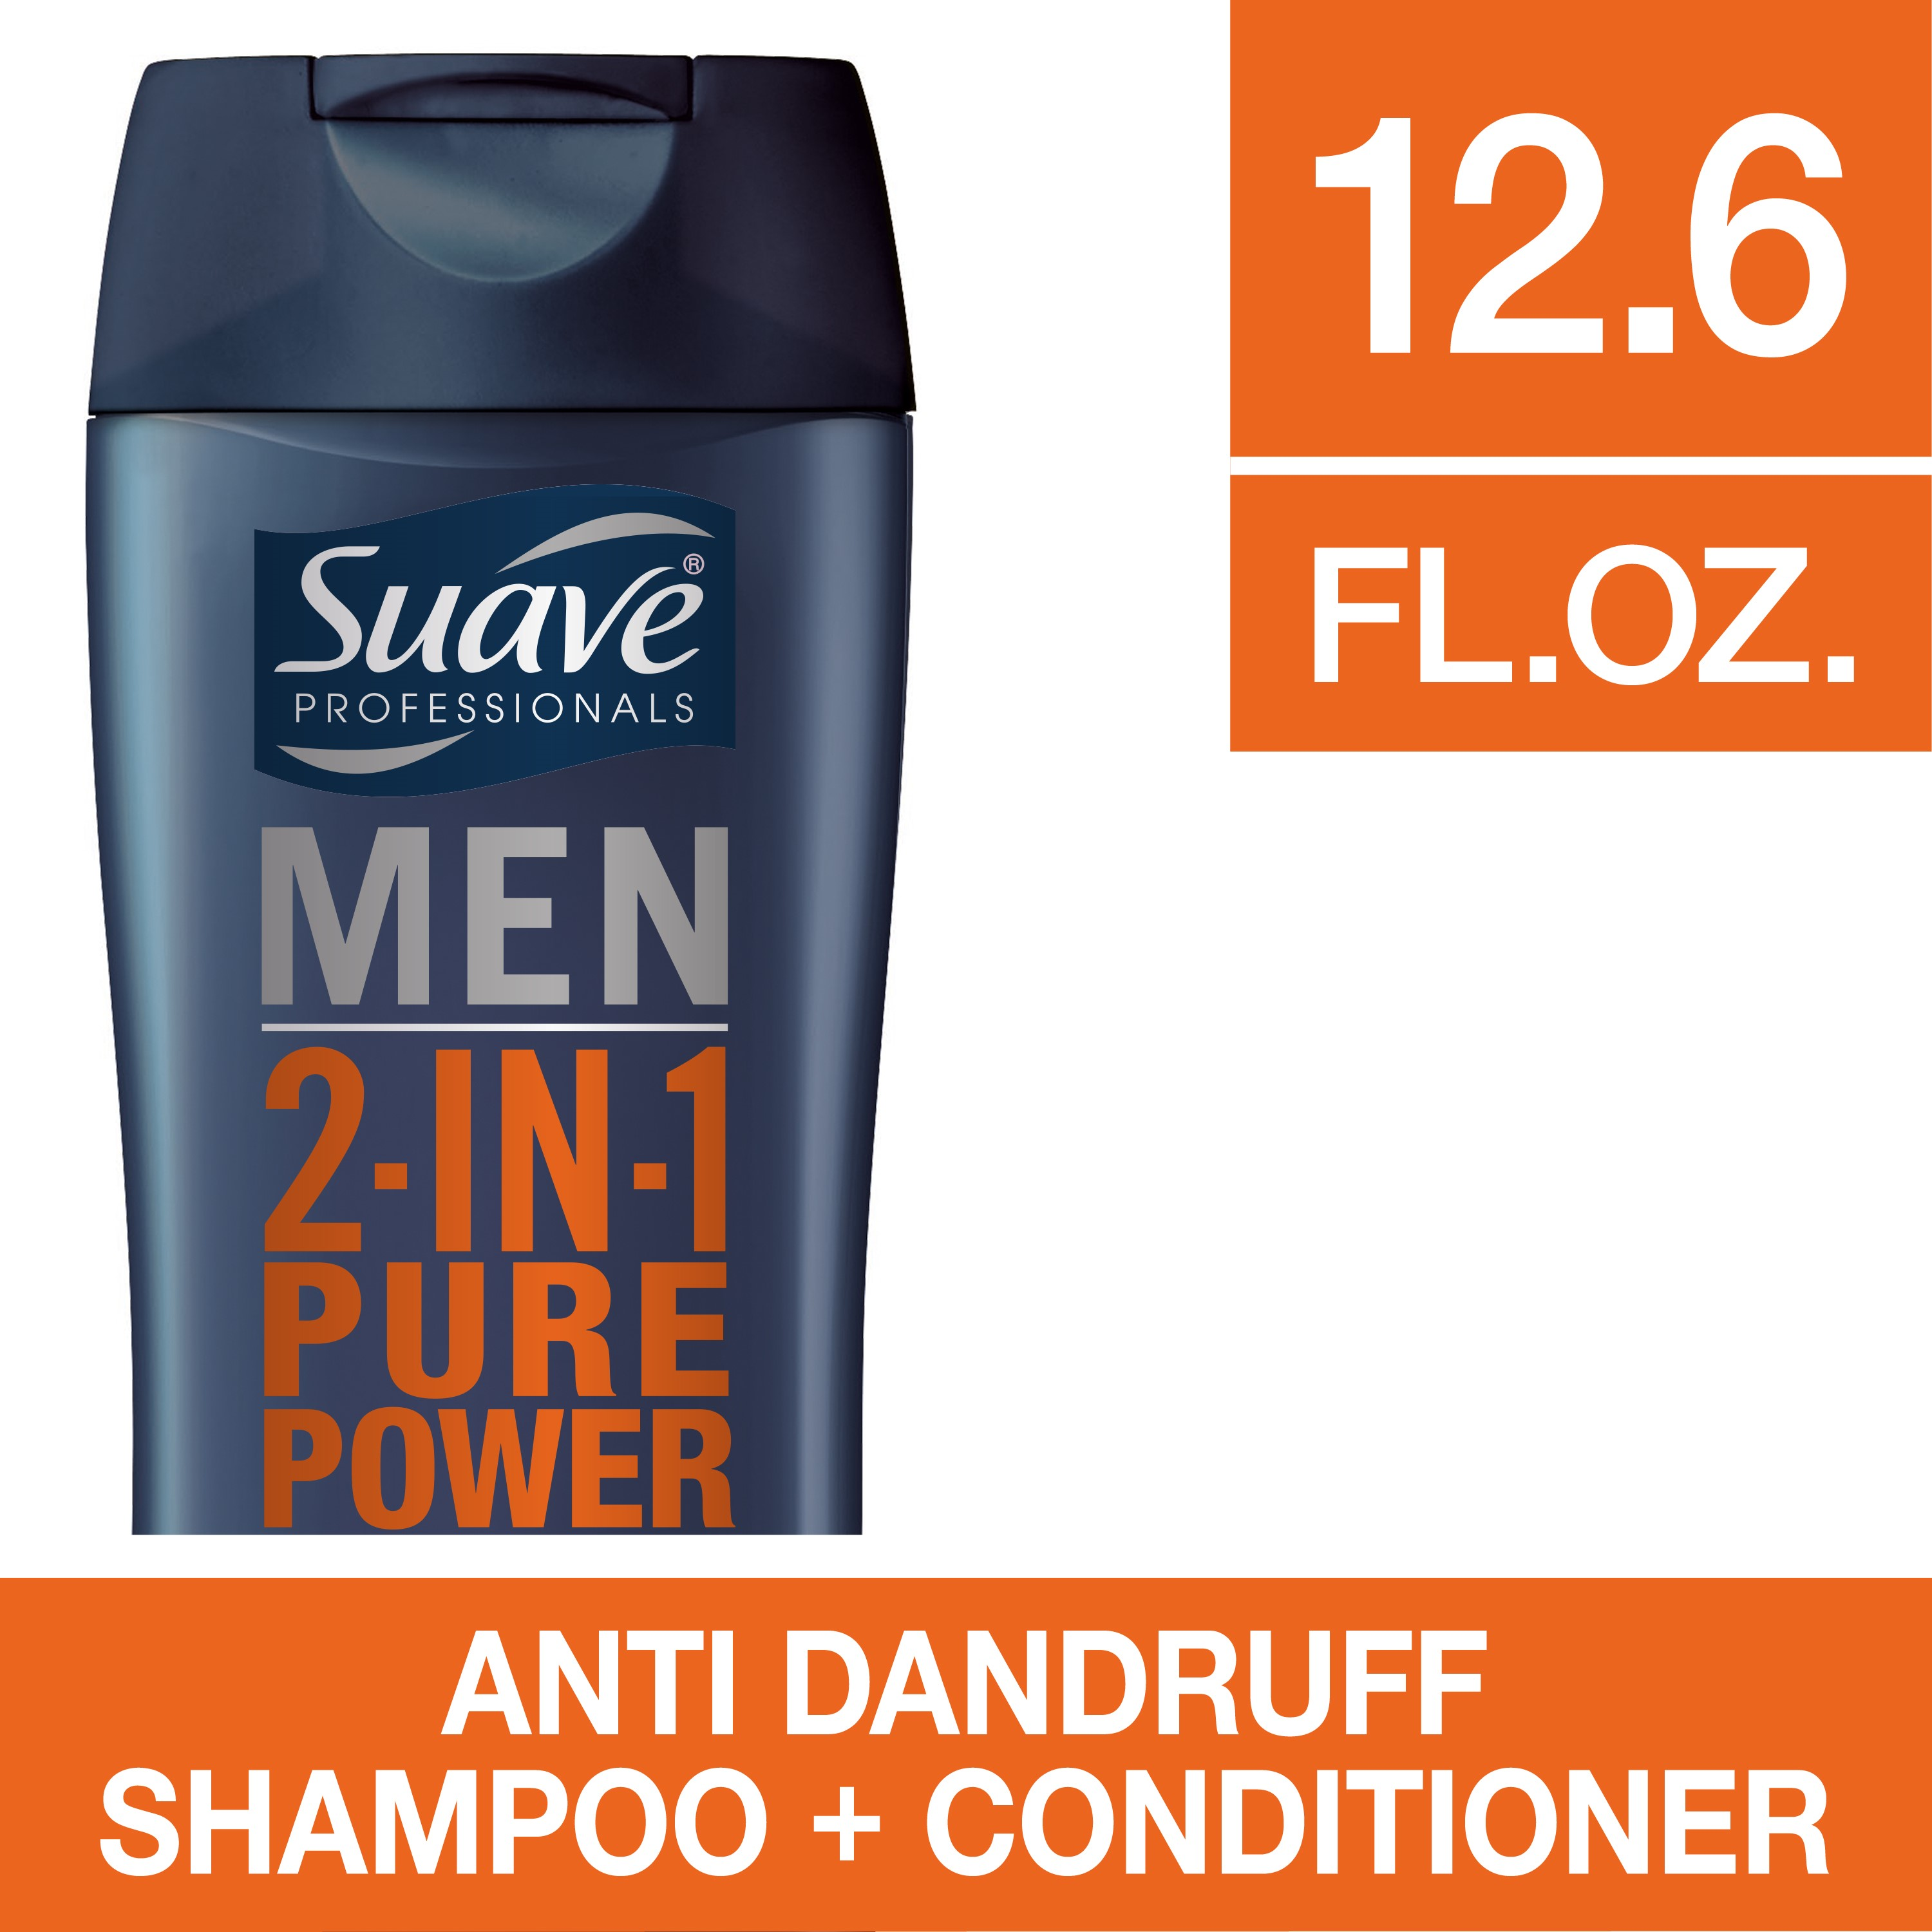 (2 Pack) Suave Men Anti-Dandruff Pure Power 2-in-1 Shampoo & Conditioner, 12.6 Fl Oz